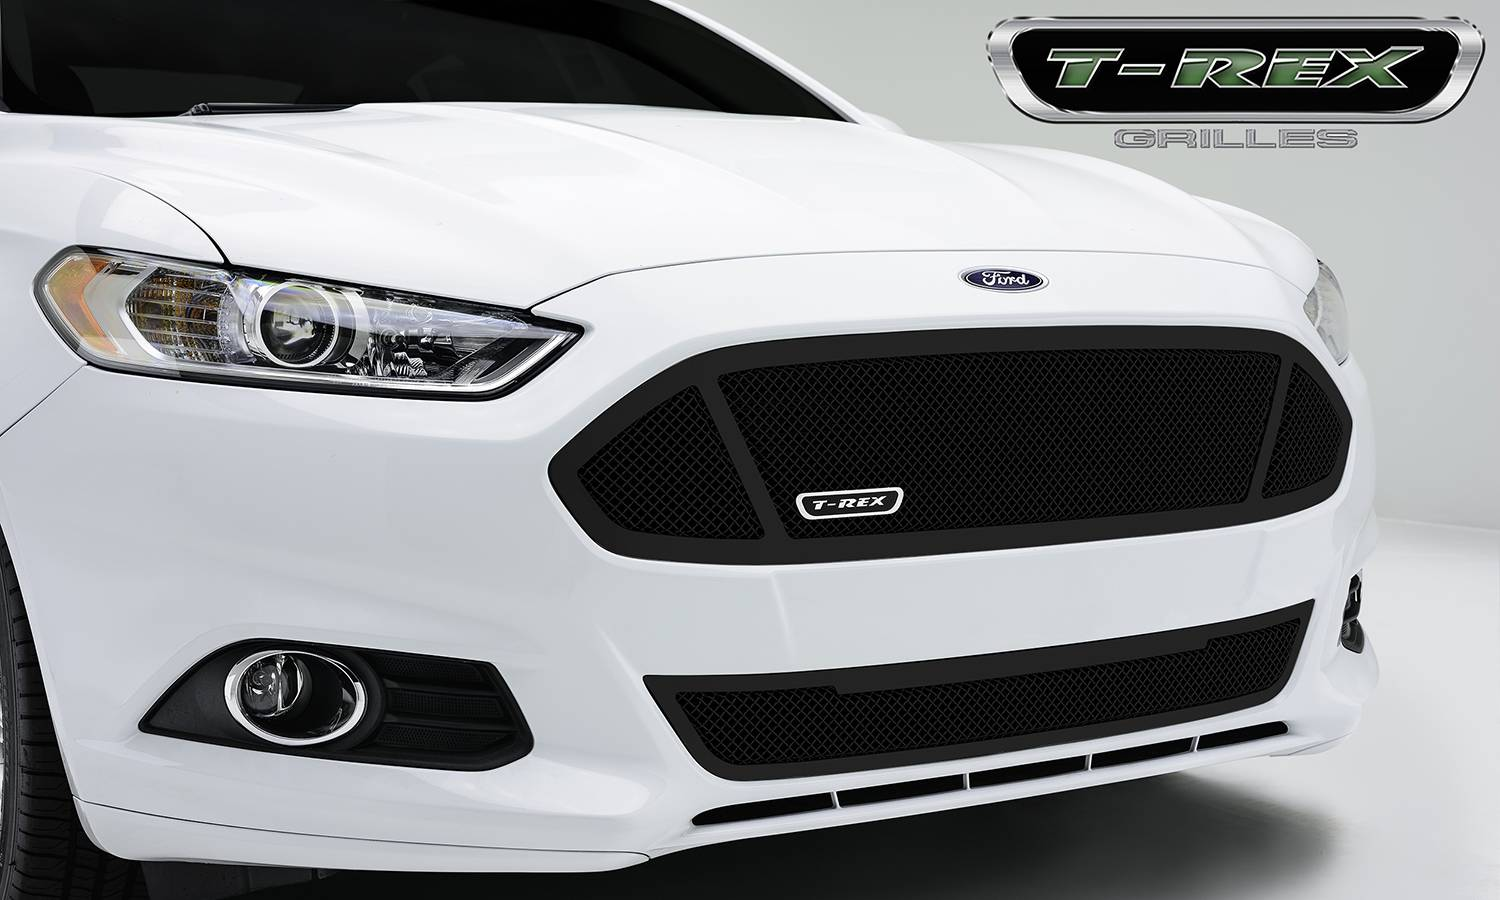 T-REX Ford Fusion Upper Class, Formed Mesh Grille, Main with 3 windows, Replacement, 1 Pc, Black Powdercoated Mild Steel - Pt # 51531